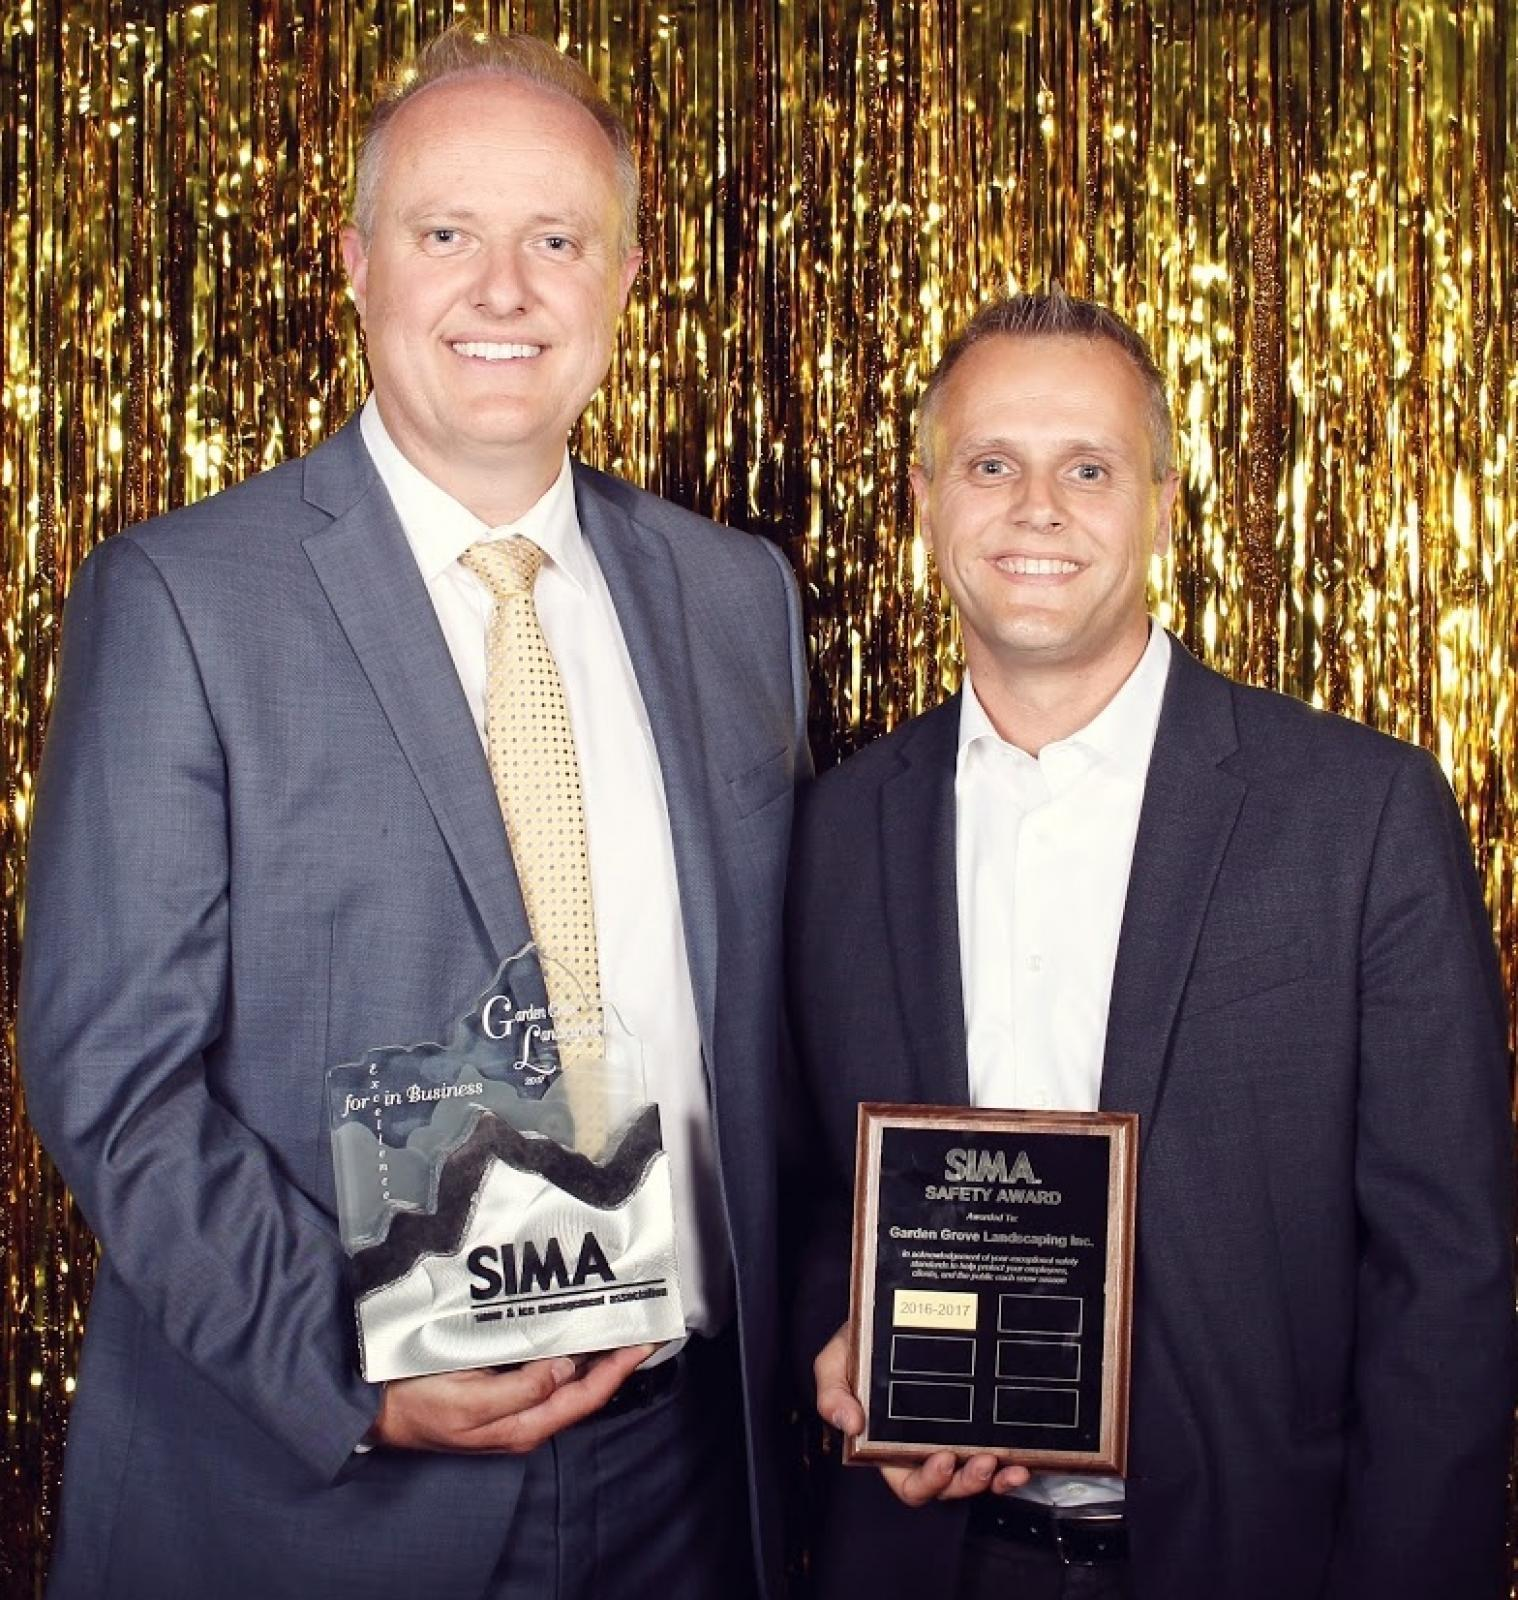 David Lammers (left) with the Excellence in Business Award, joined by his brother Paul Lammers, with the Safety Award.